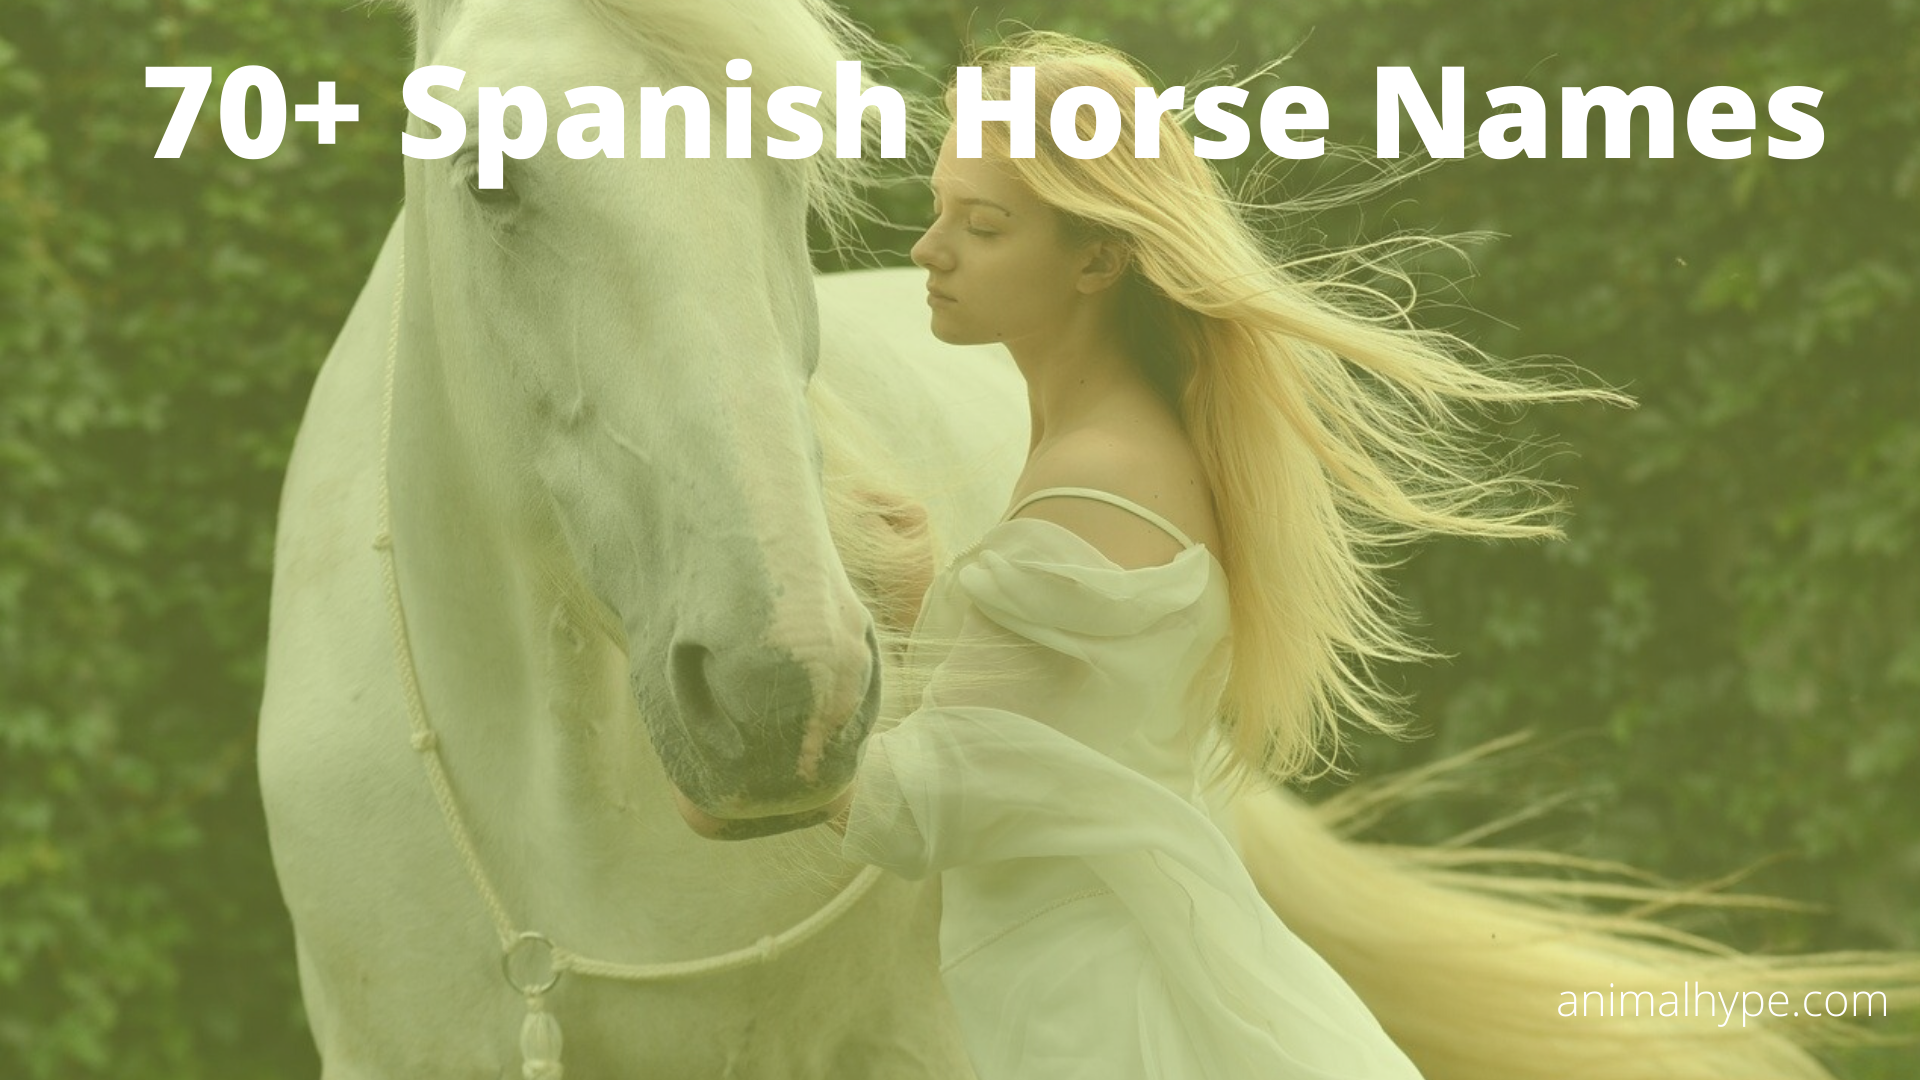 70 Spanish Horse Names With Meanings Animal Hype